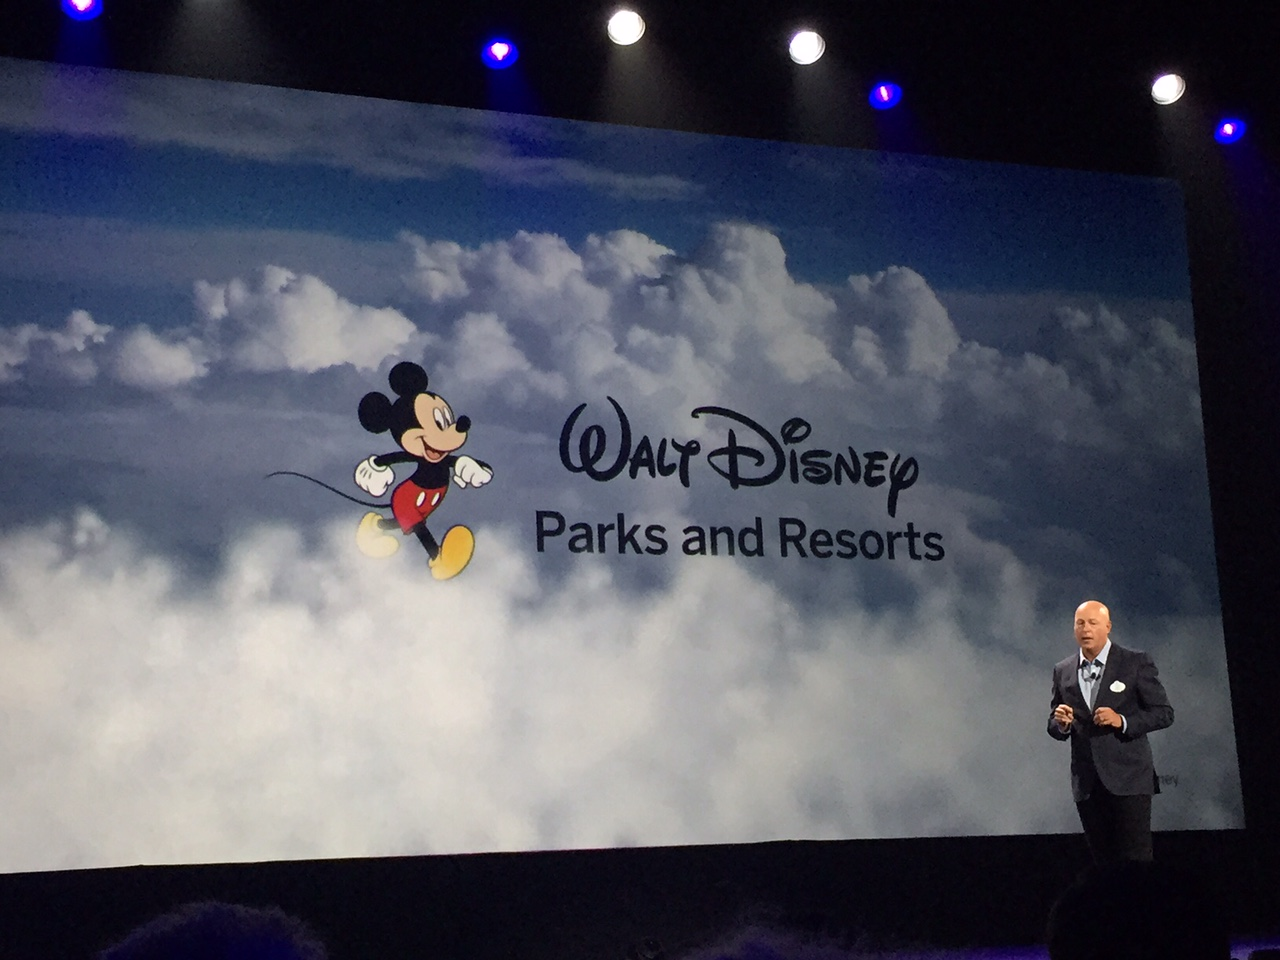 D23 Expo: Parks & Resorts